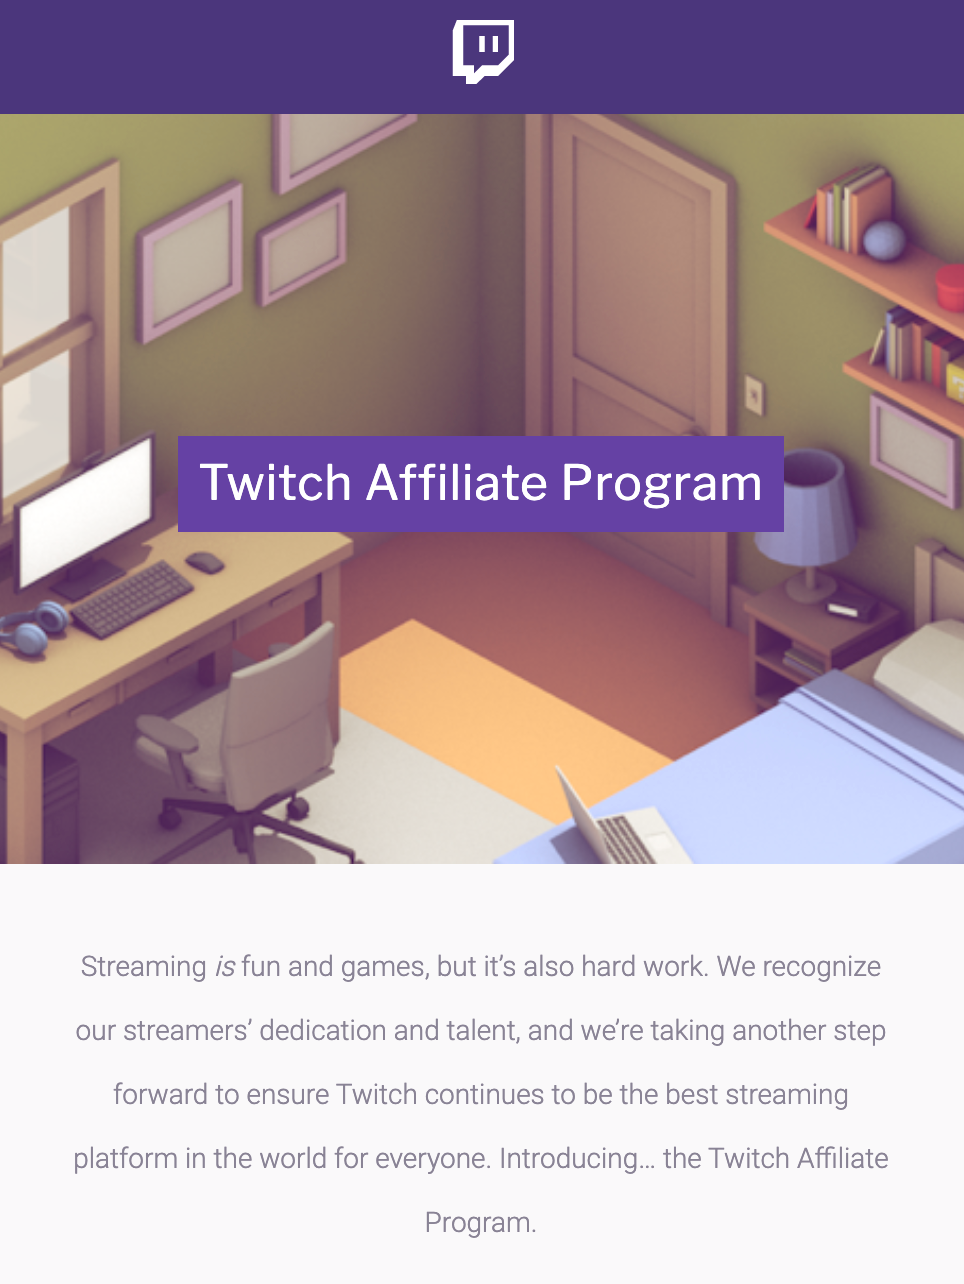 How to Get Money From Twitch: Become a Twitch Affiliate